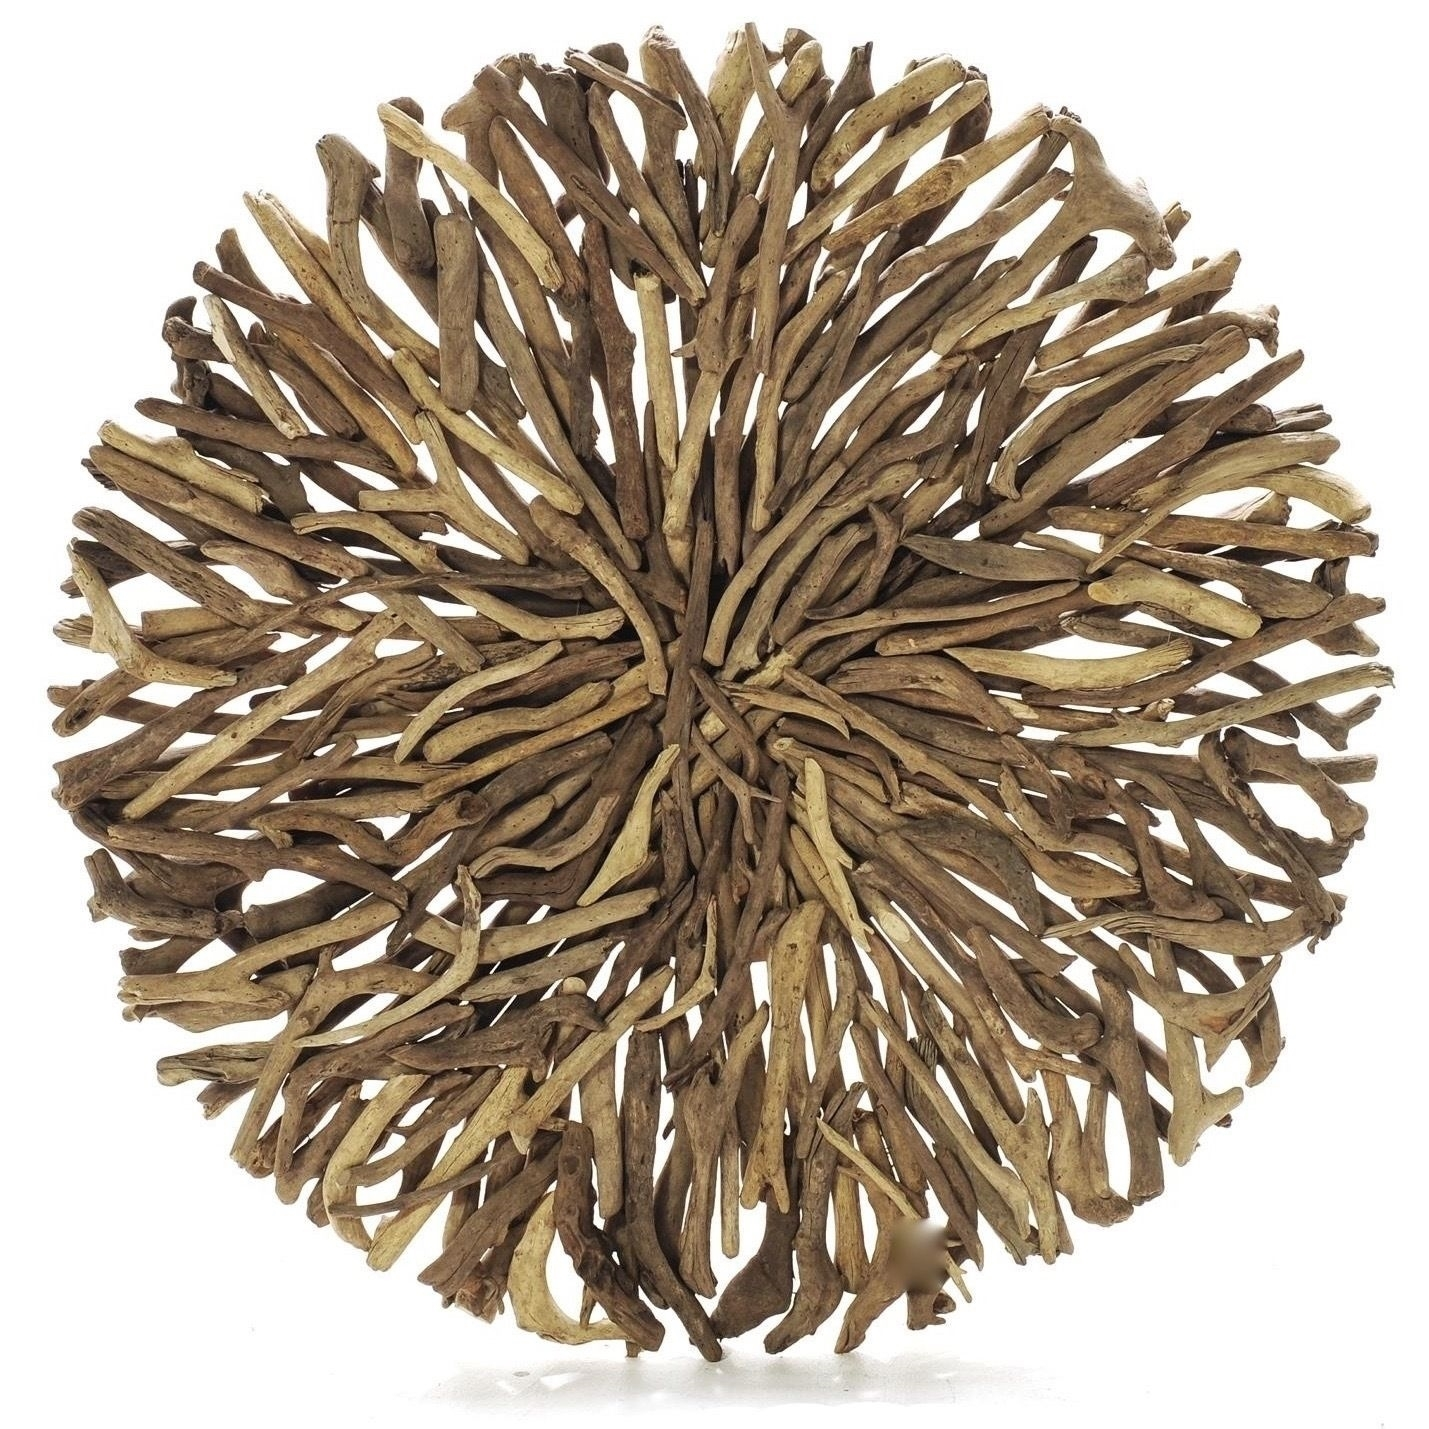 Driftwood Round Wall Hanging Art Indoor Outdoor 55Cm | Ebay With Regard To Most Recently Released Round Wall Art (View 6 of 20)